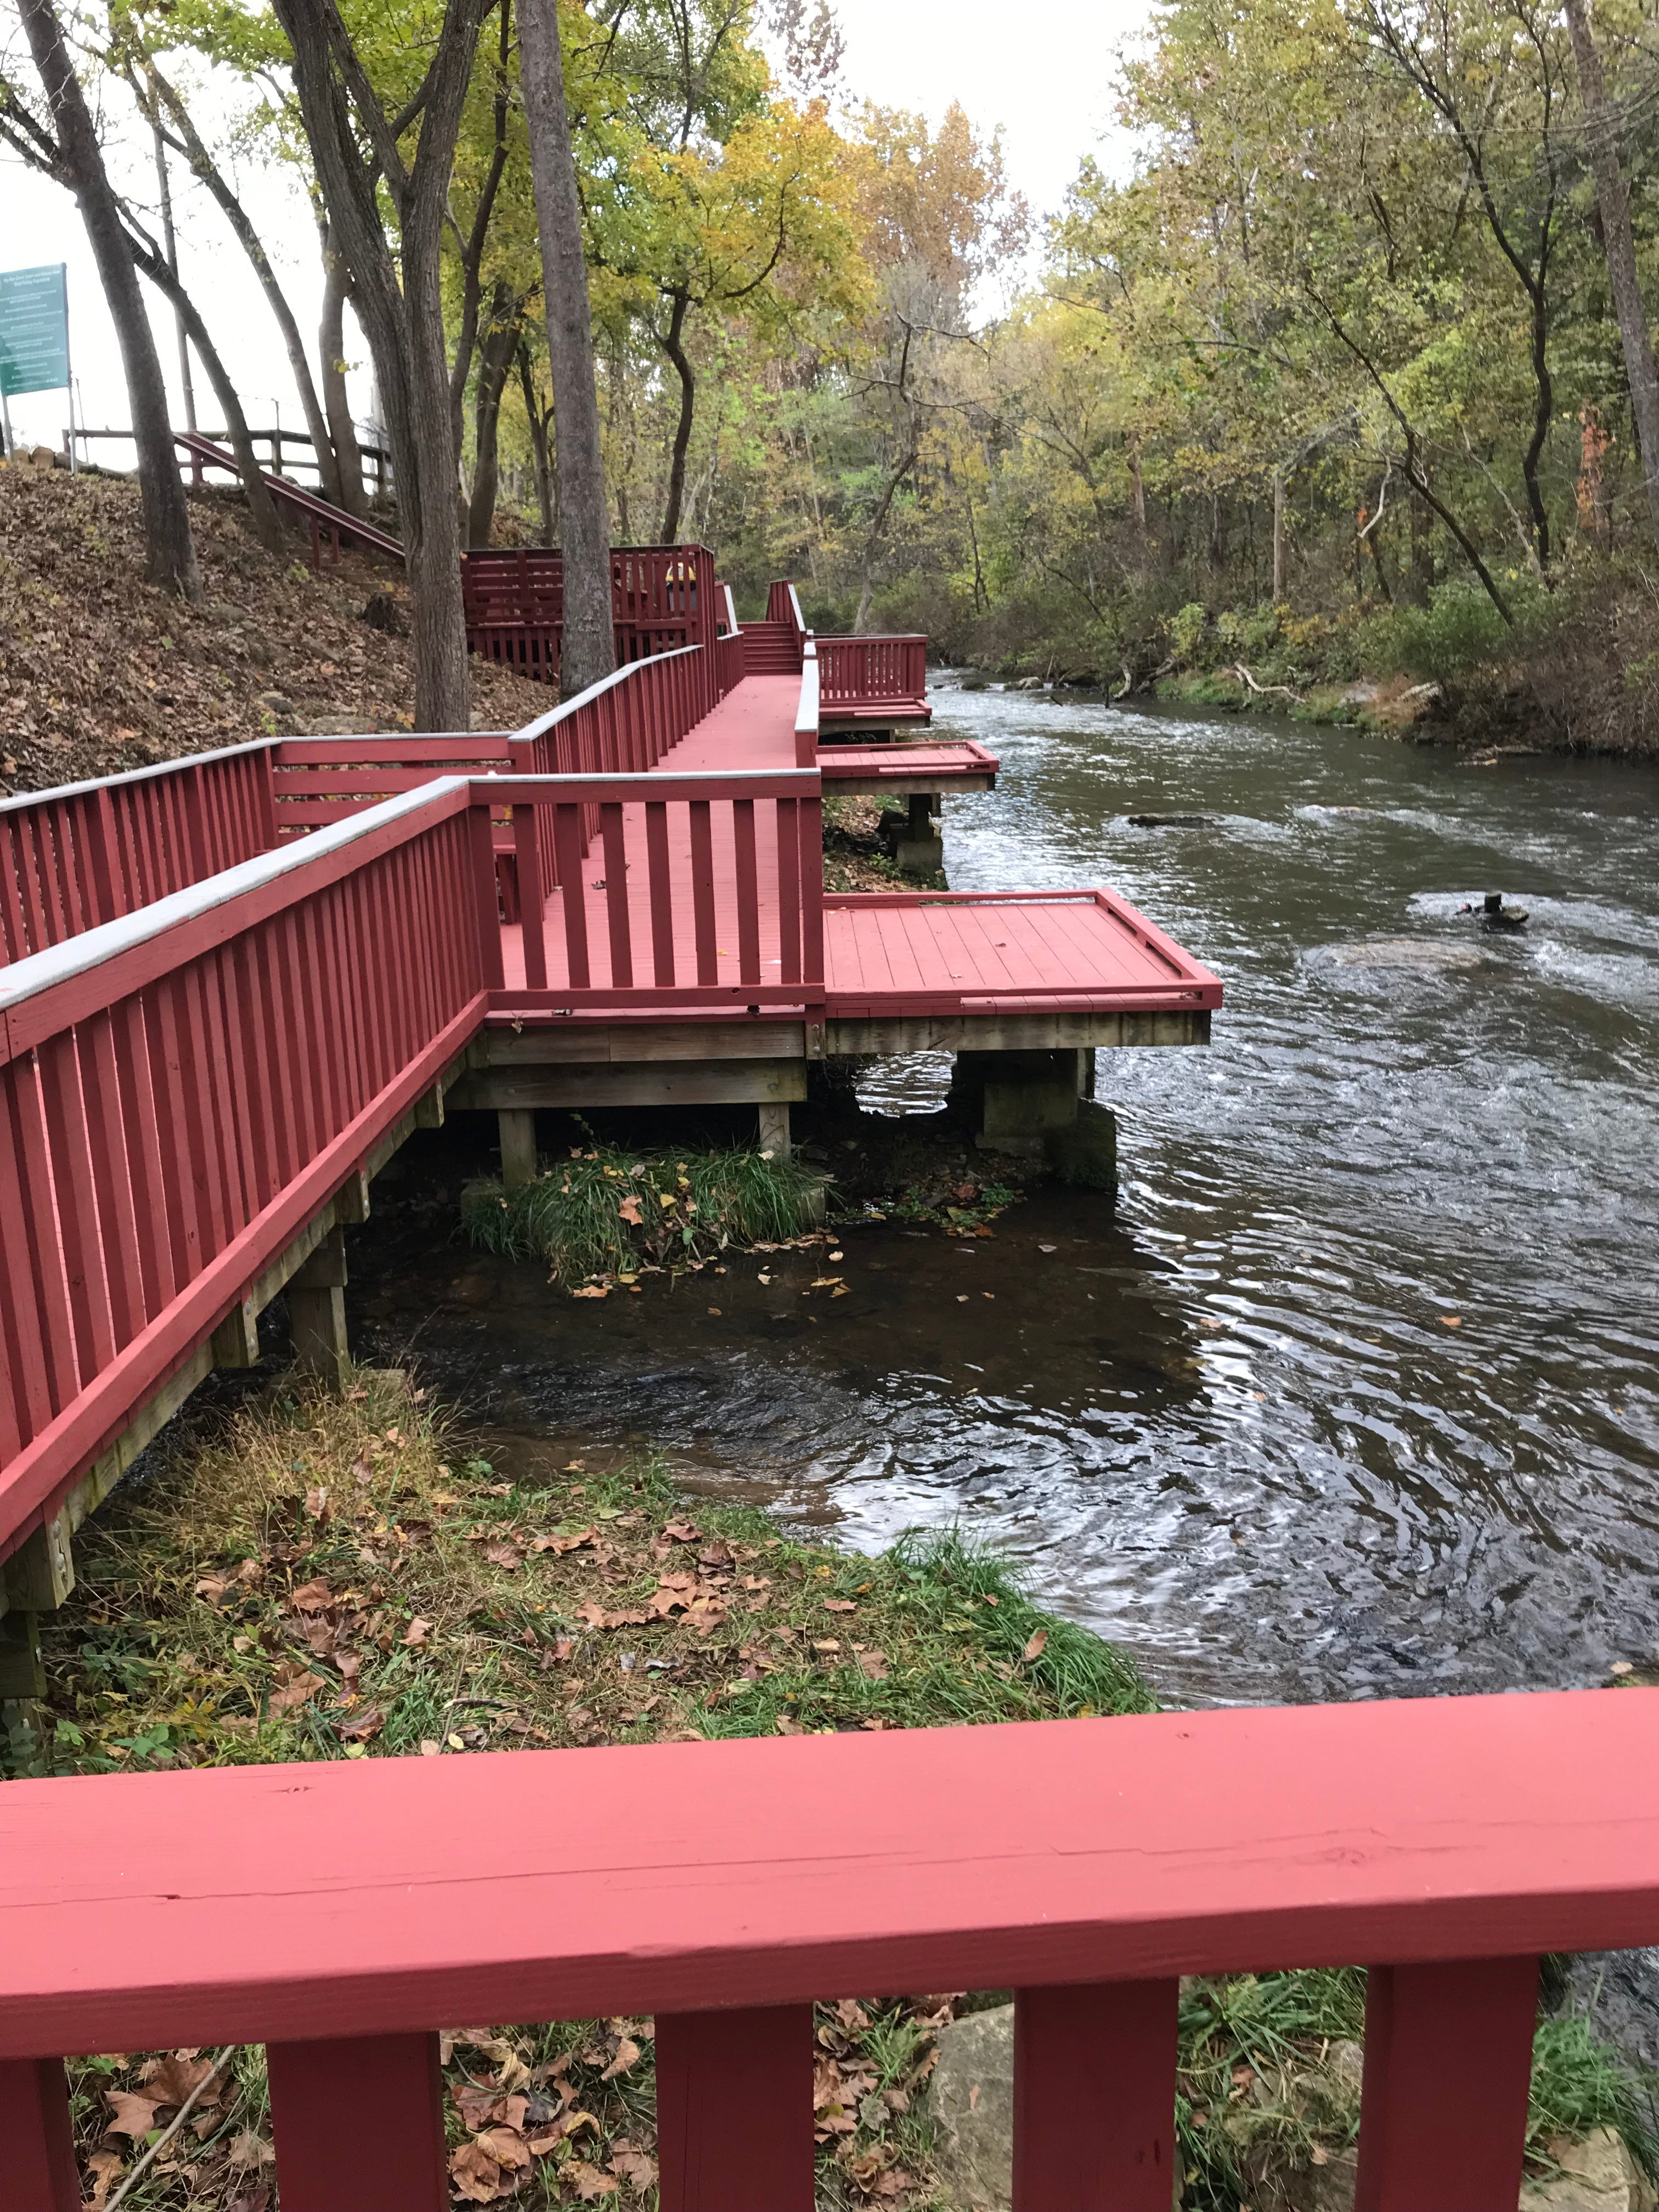 The decks and railings along Dry Run Creek offer handicapped anglers easier access to the water.